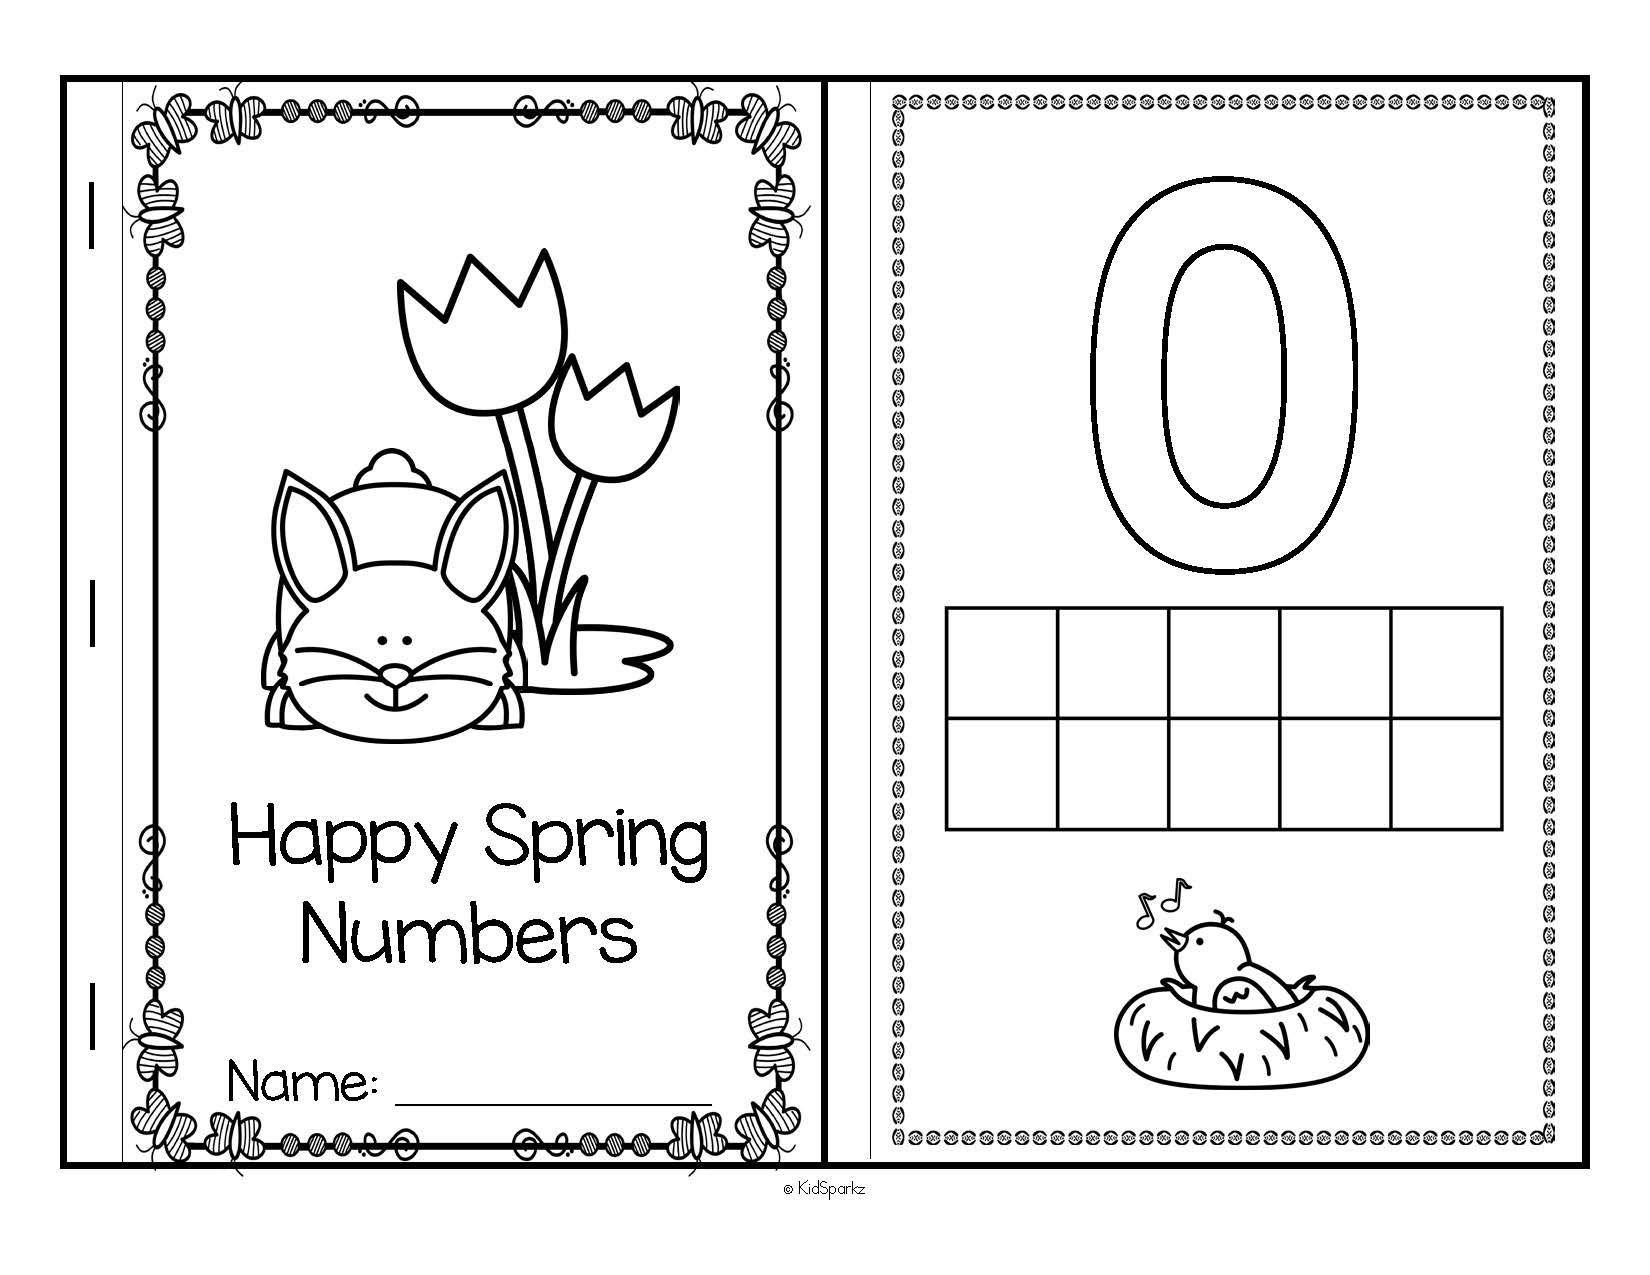 April Showers Coloring Pages AZ Coloring Pages (With